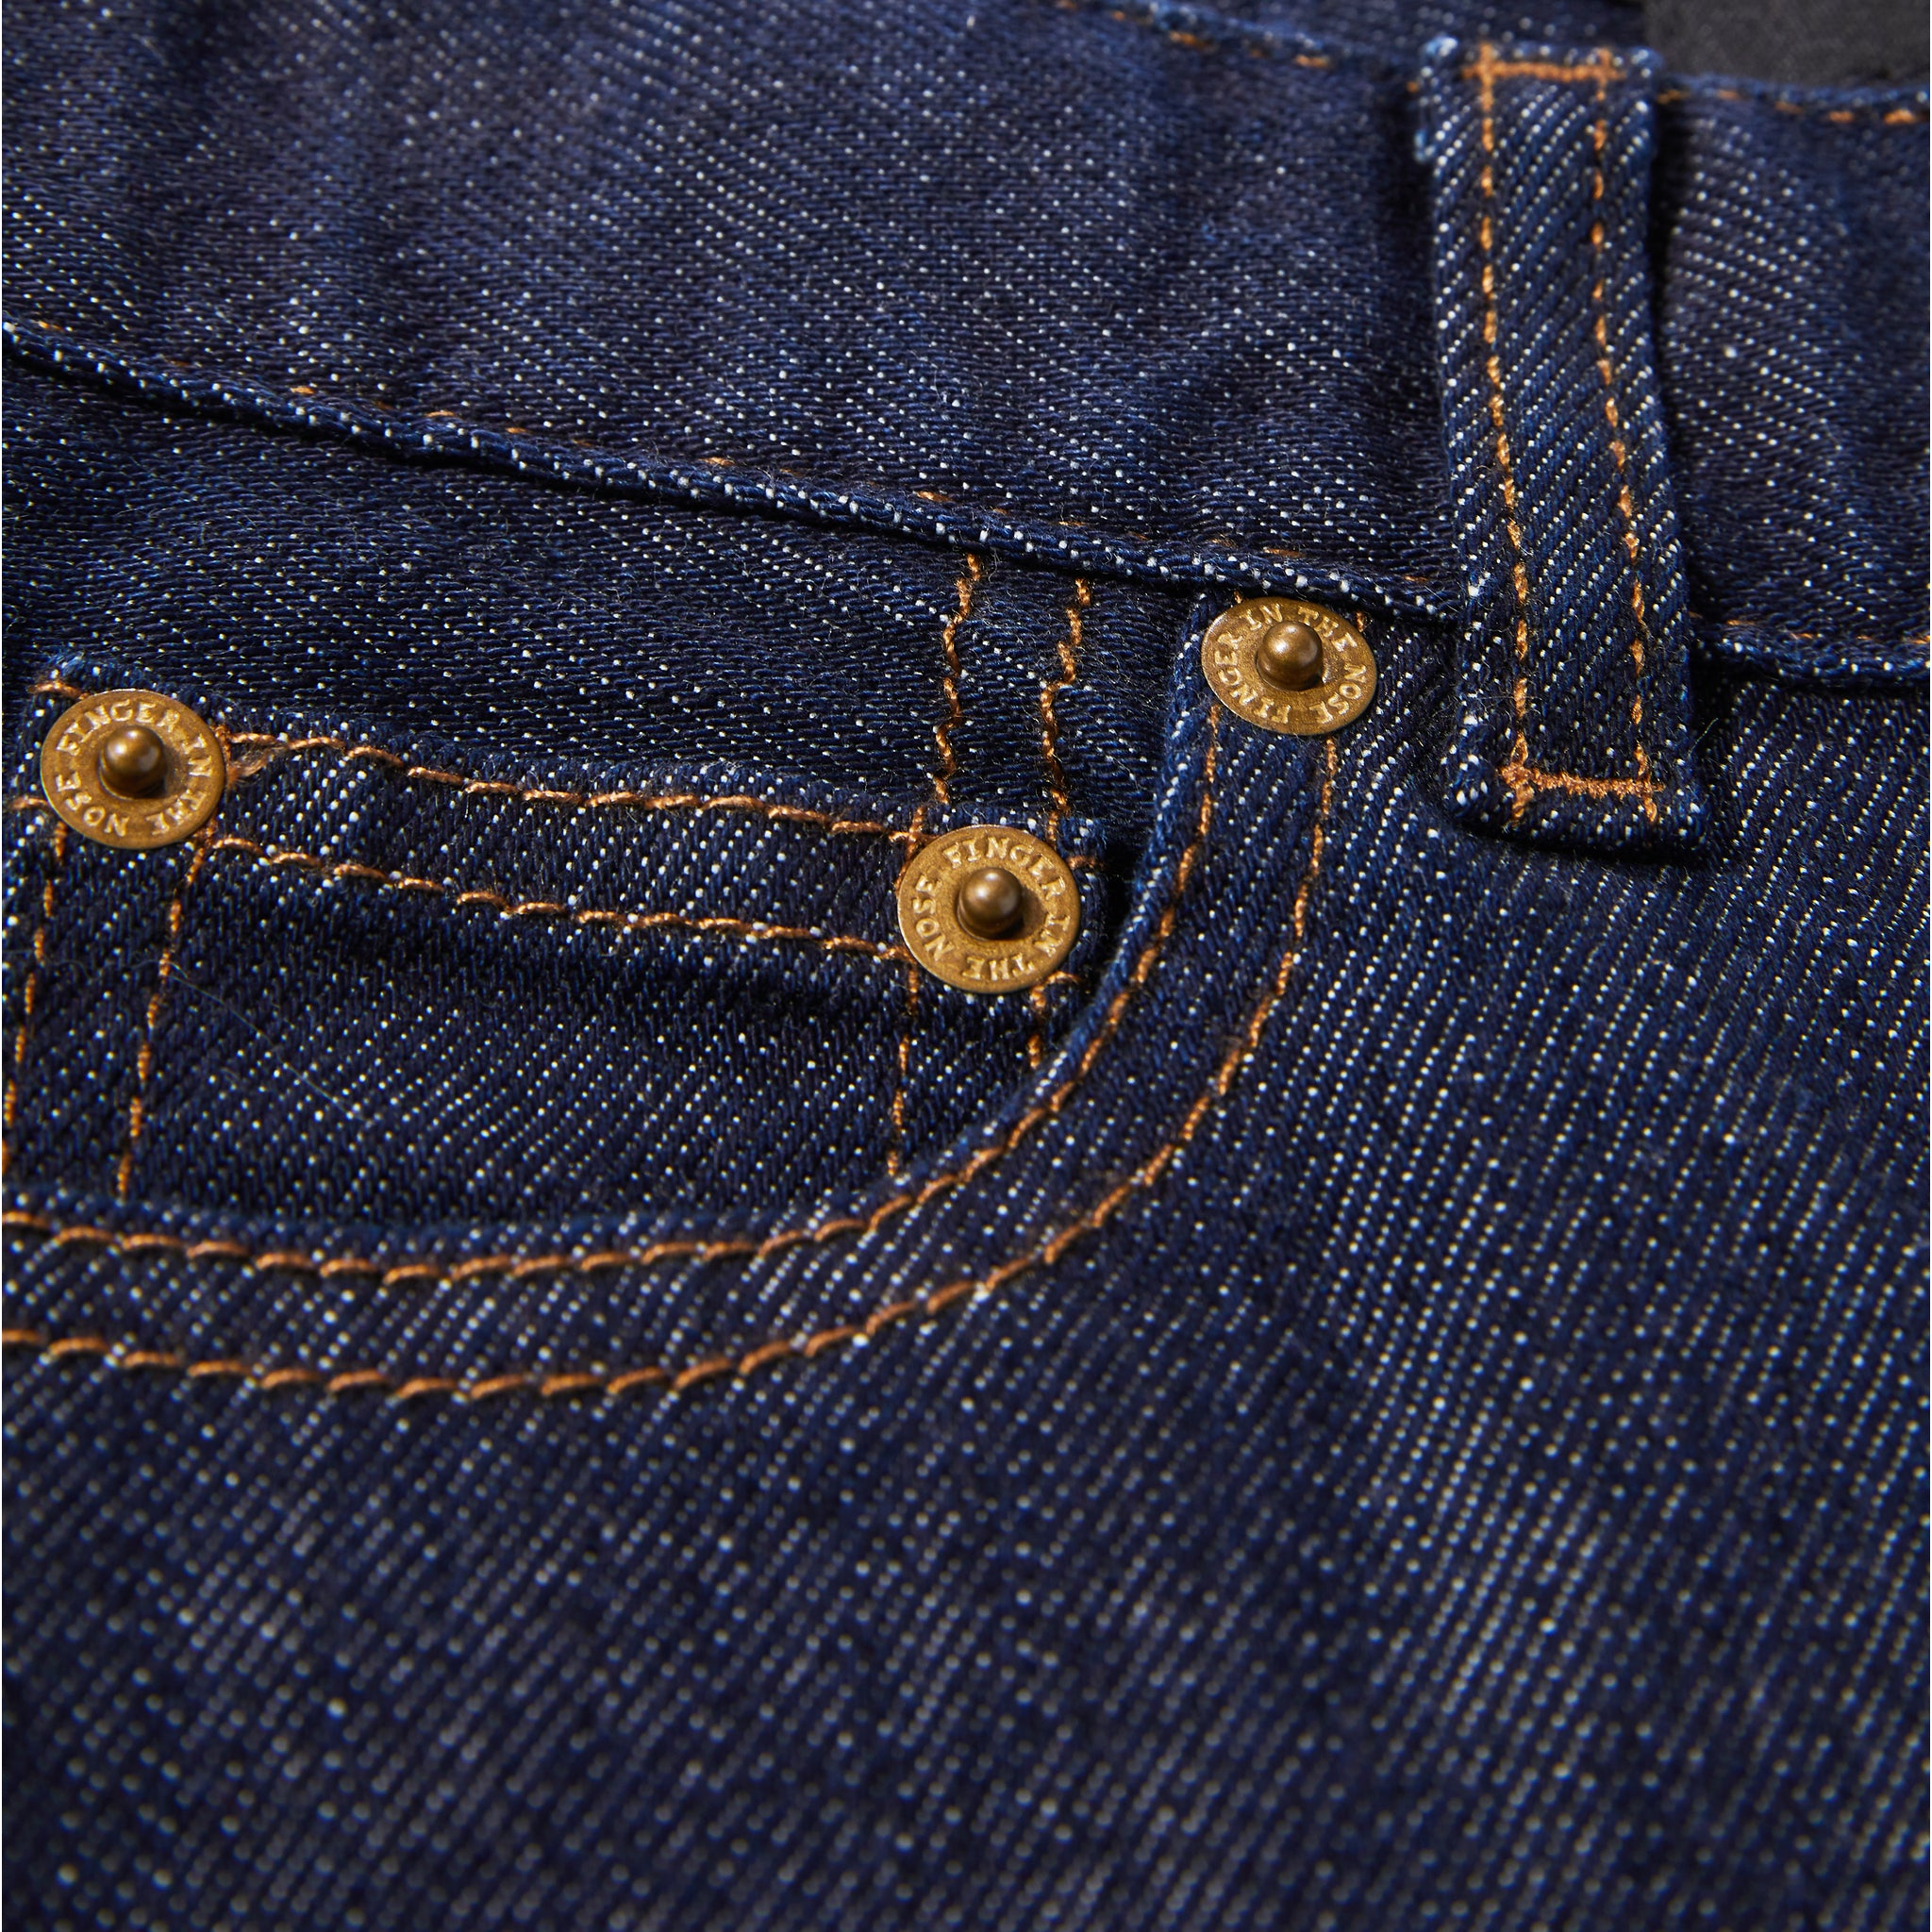 EWAN Raw Denim Blue - 5 Pocket Comfort Fit Jeans 5